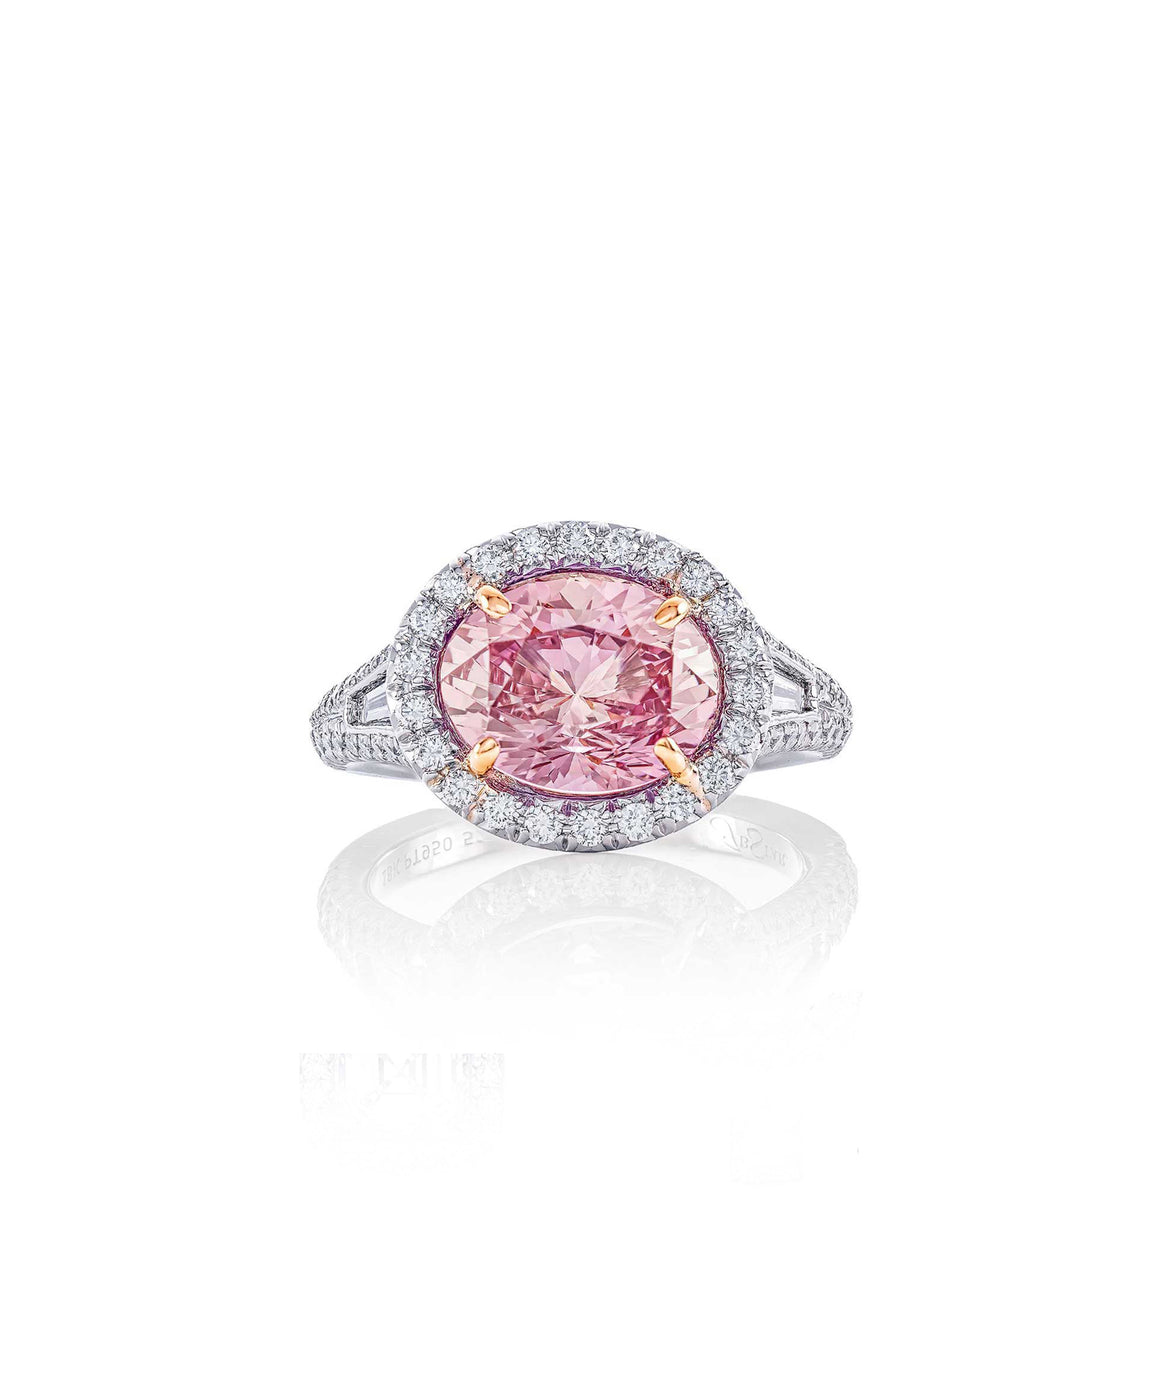 Extraordinary padparadscha sapphire ring.